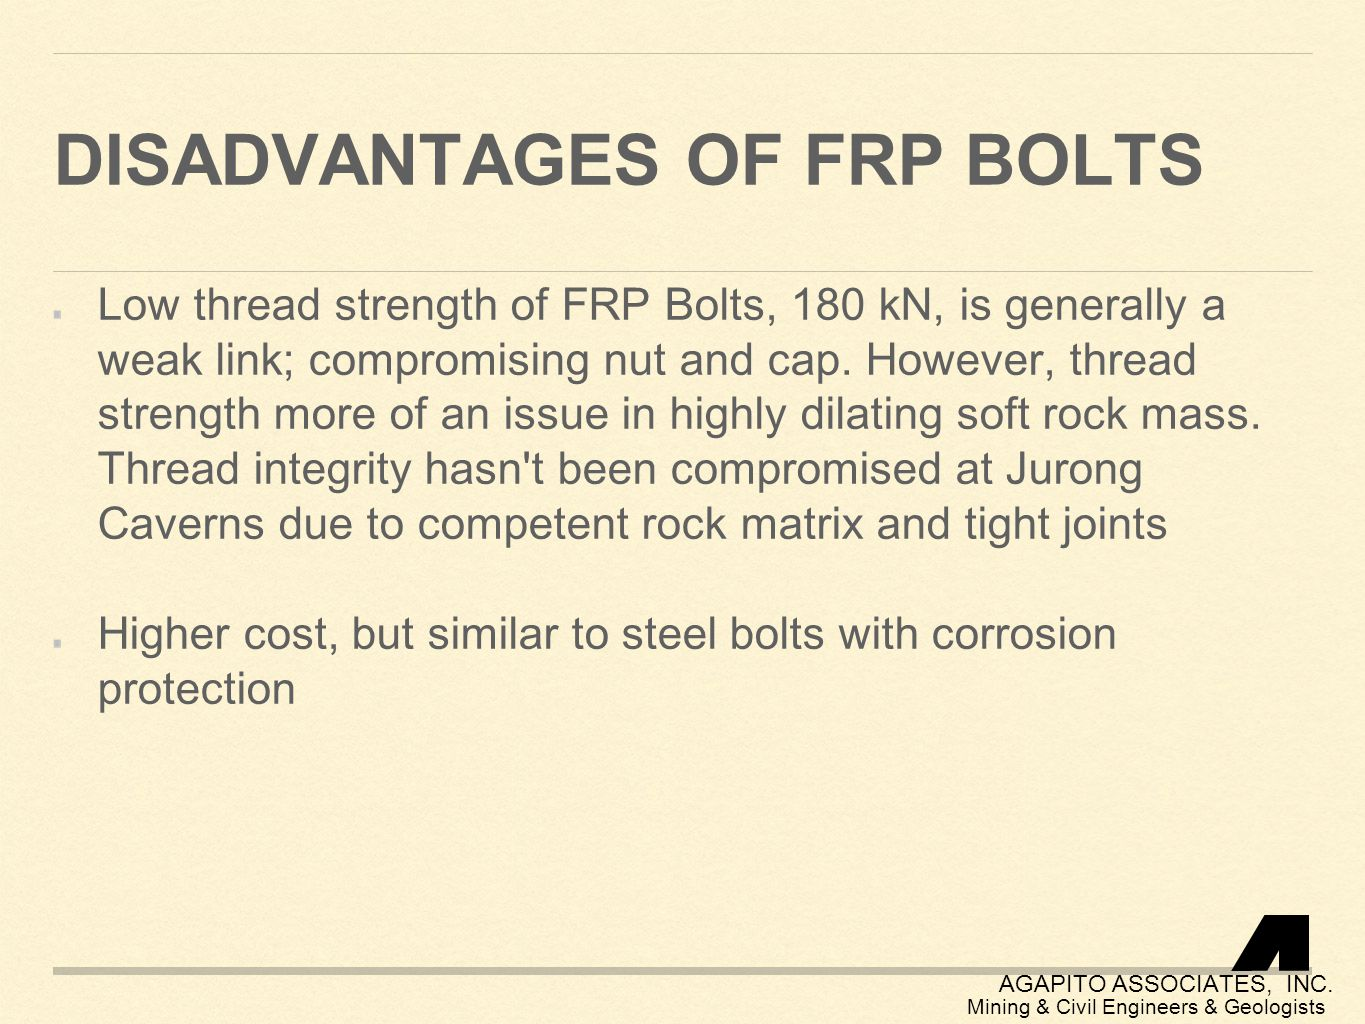 Disadvantages of FRP Bolts